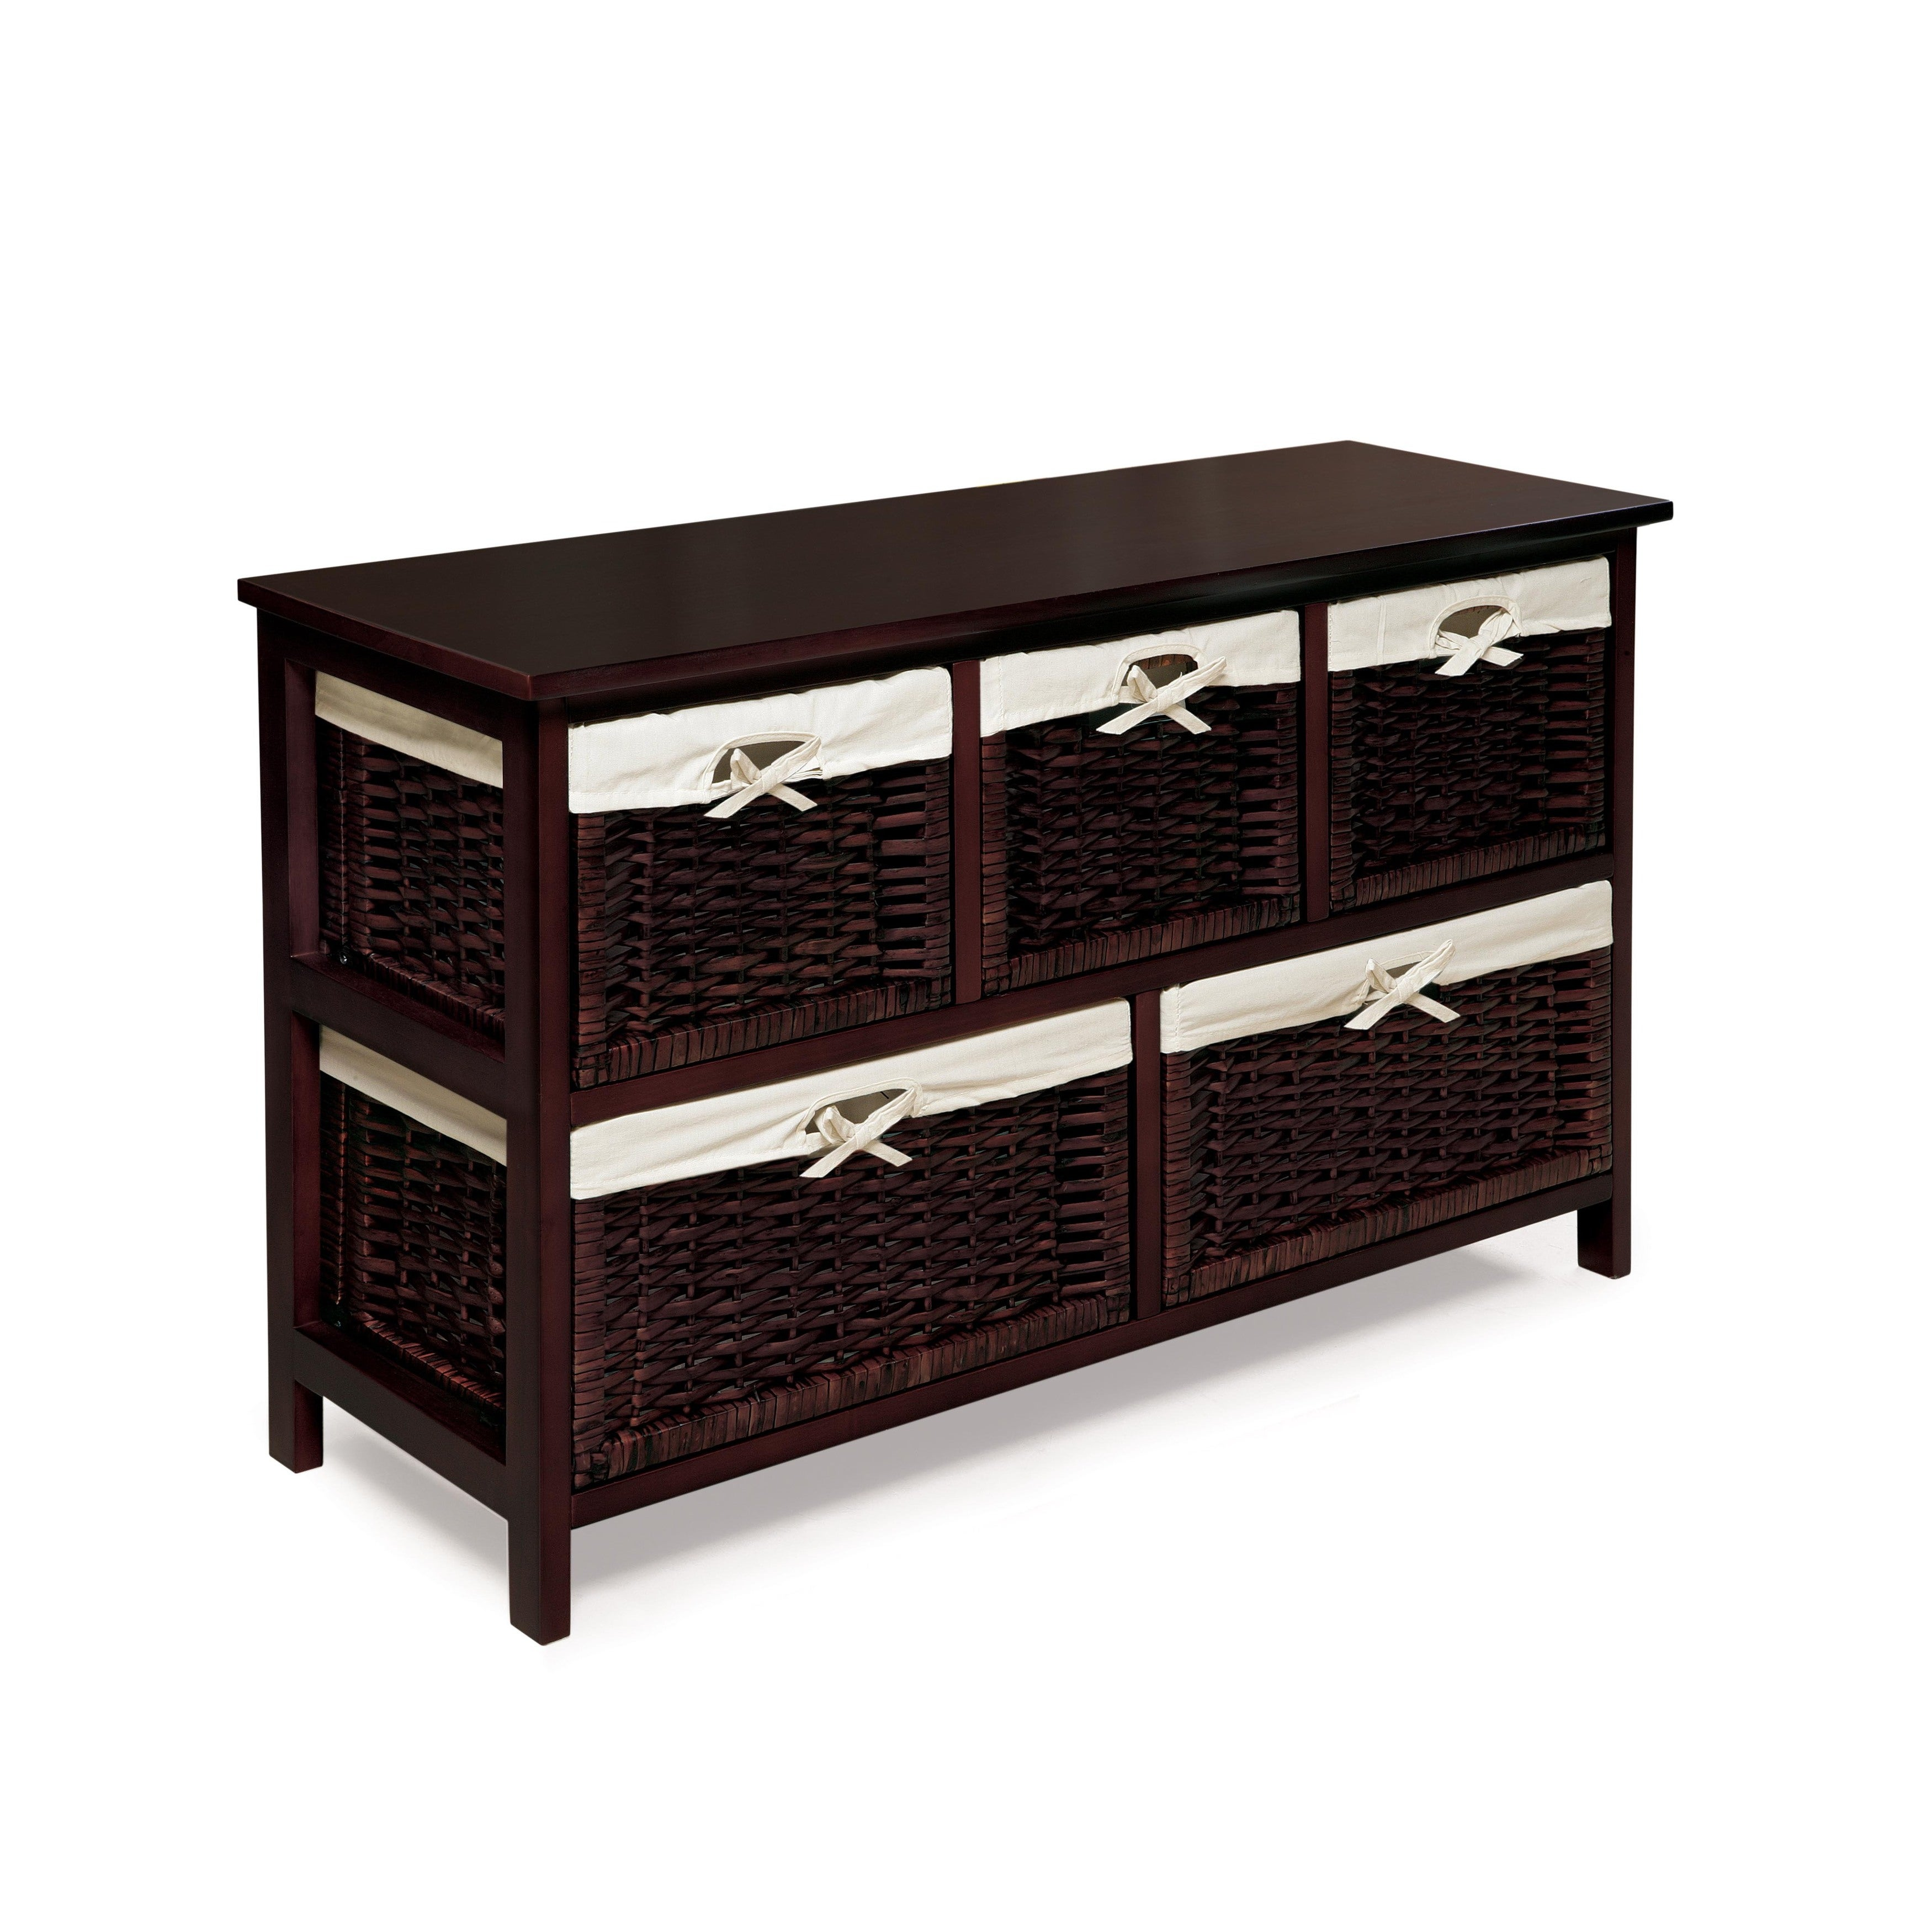 shop espresso wooden storage cabinet with wicker baskets free rh overstock com Storage Shelves with Baskets Storage Unit with Wicker Baskets